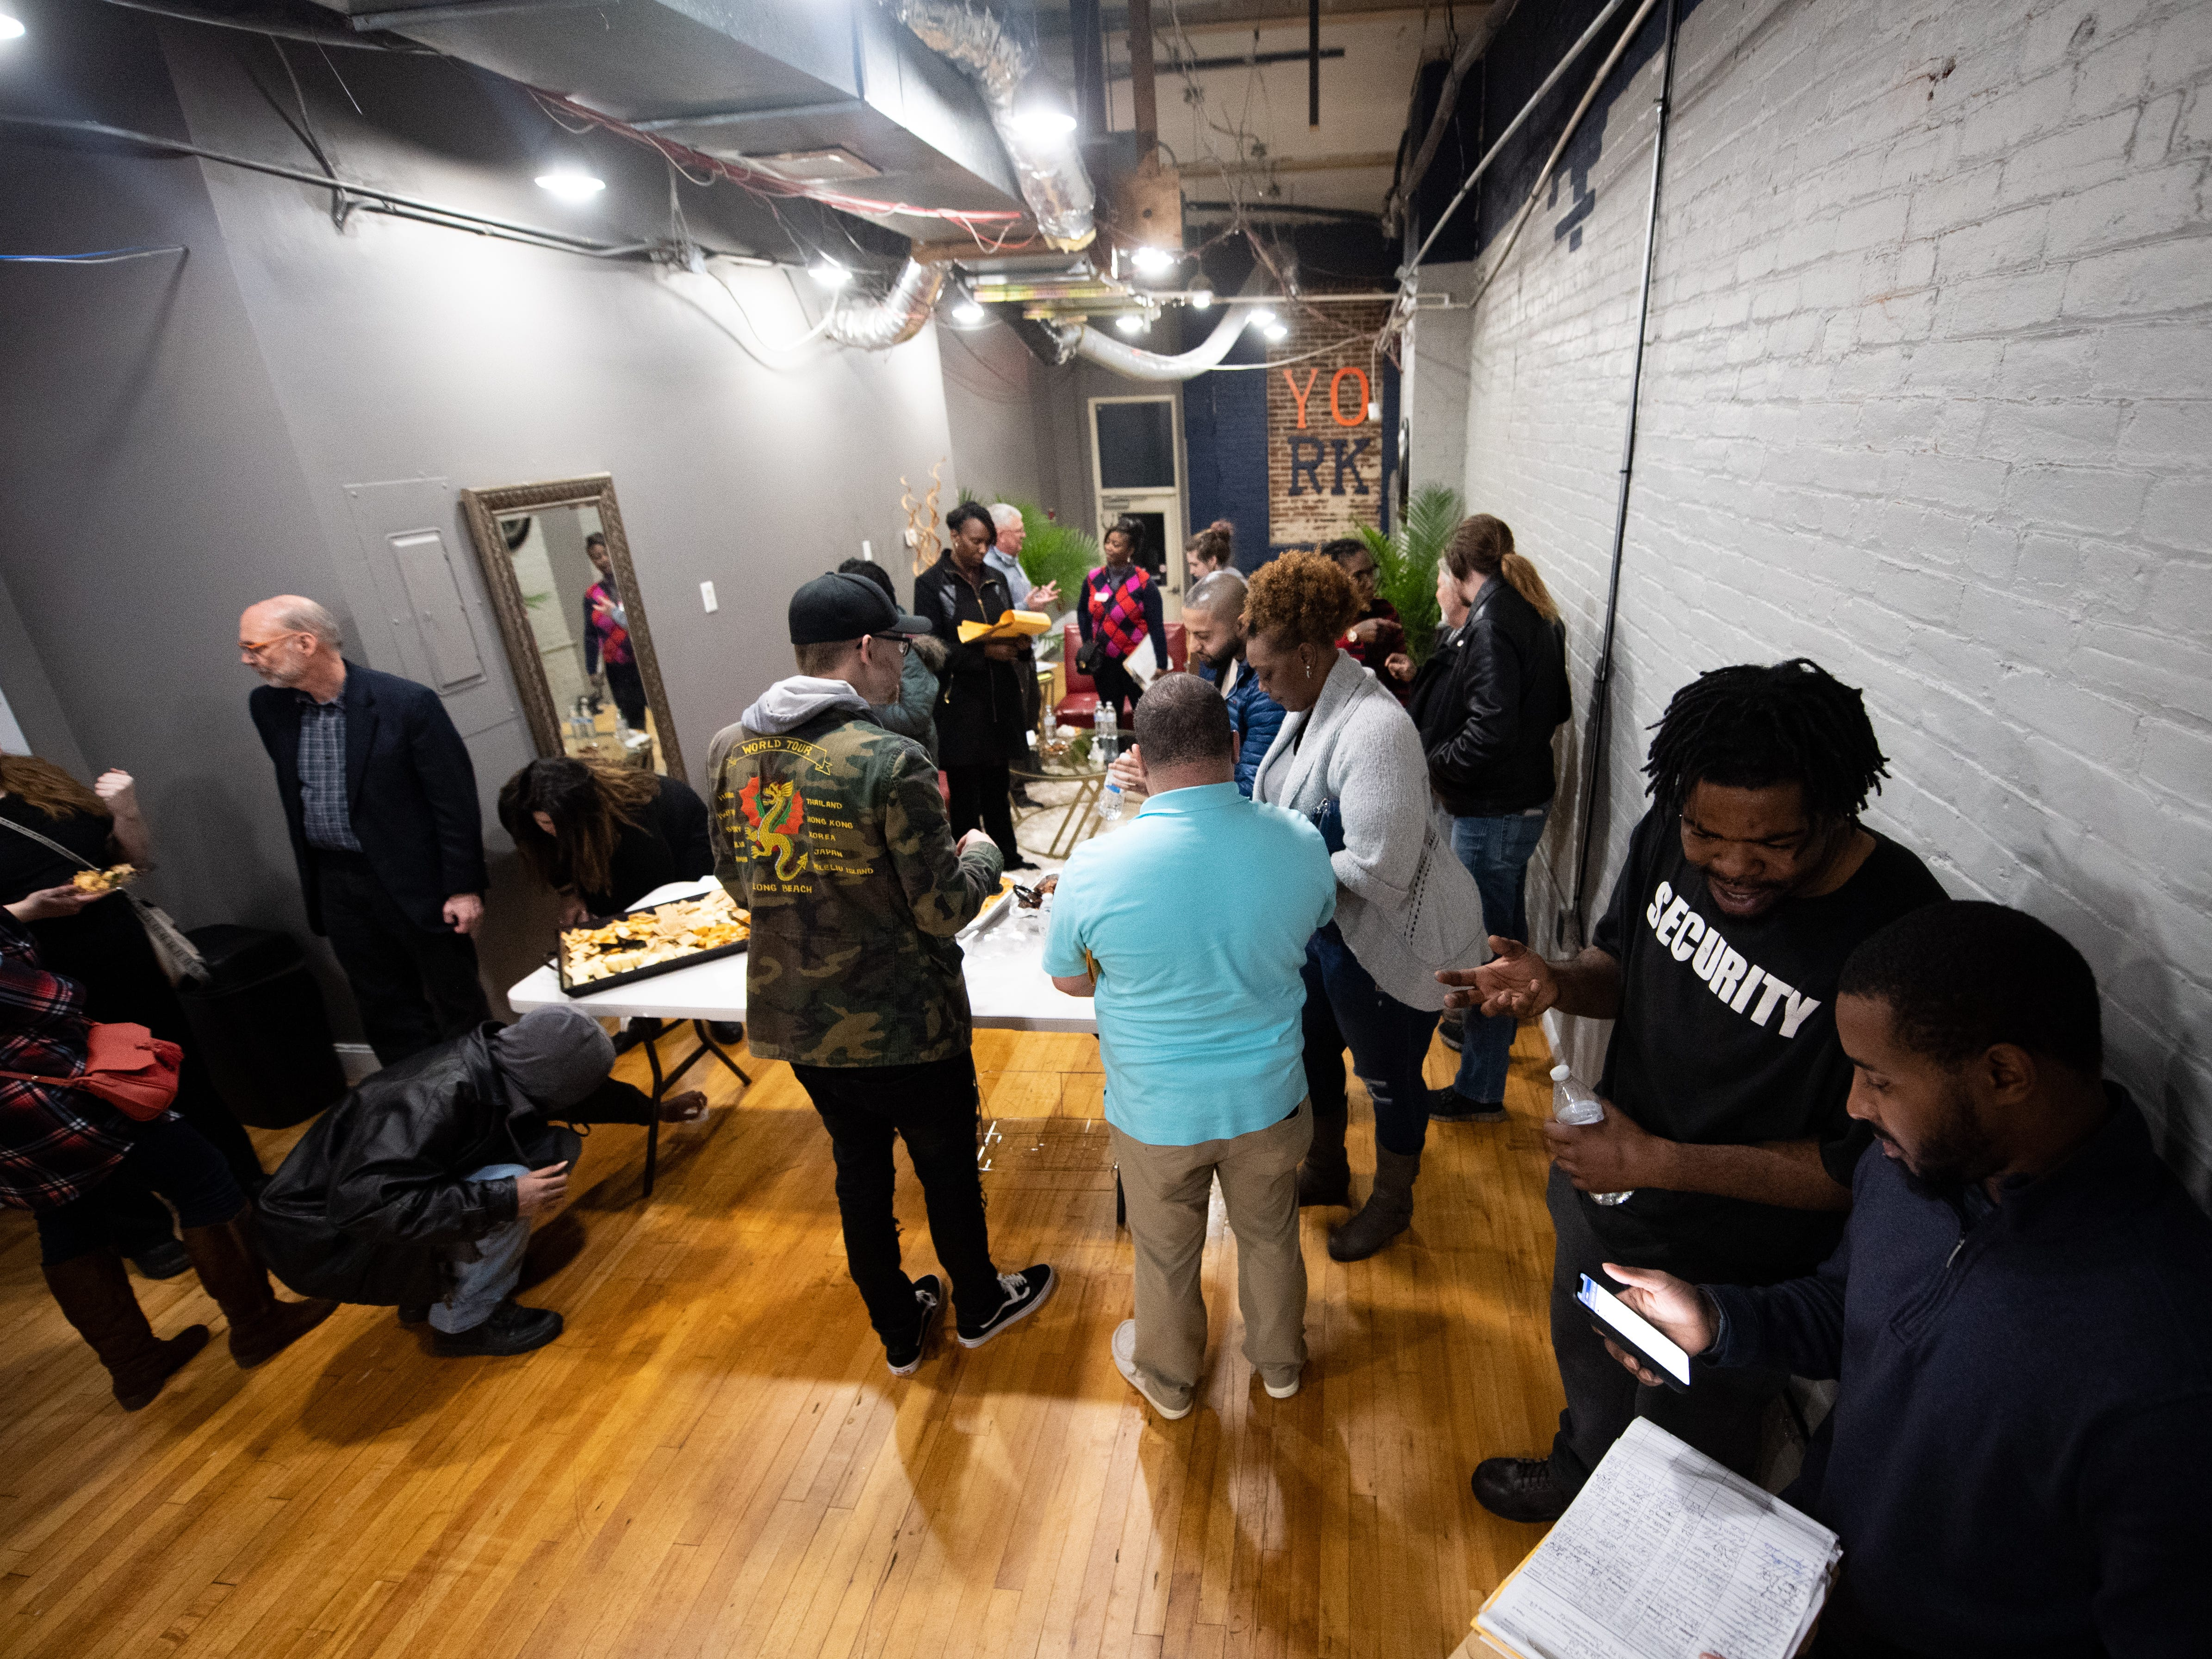 The grand opening party for the Jook Joint Global Inc. and LEXI Social Club is filled with community leaders, friends family, students and Cornbread West lovers alike, March 7, 2019.